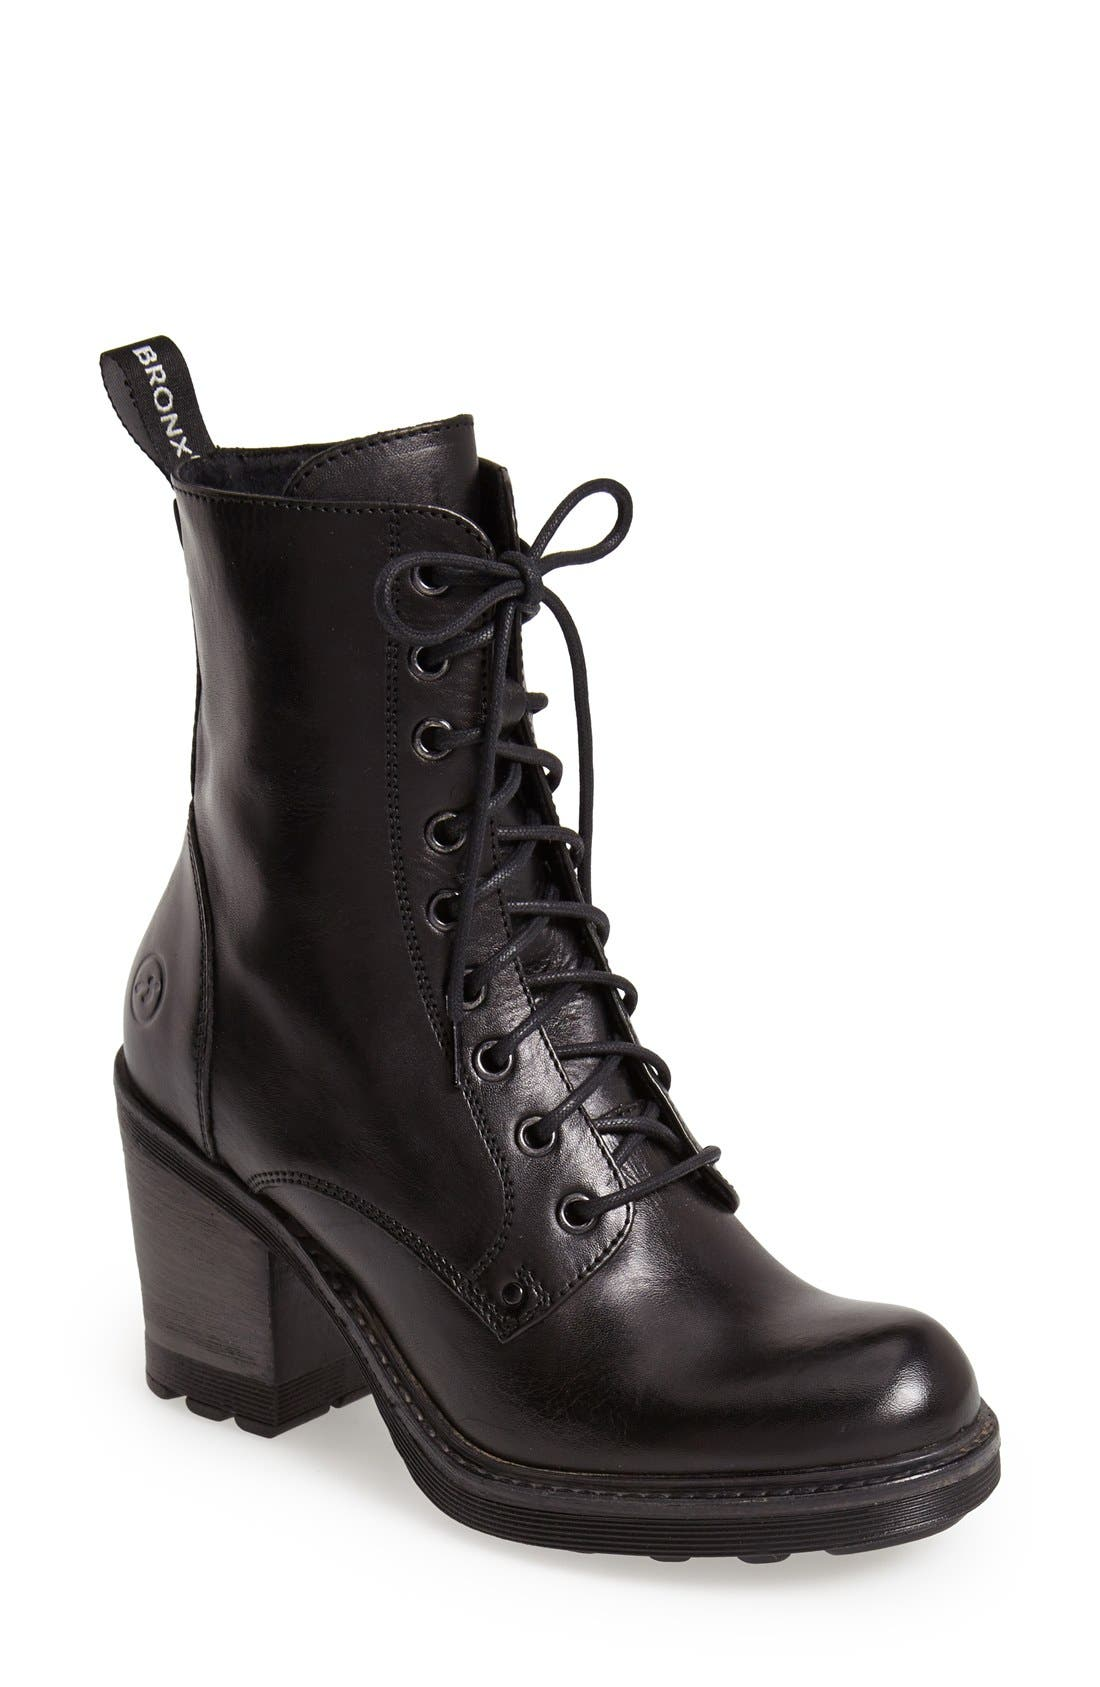 Alternate Image 1 Selected - BRONX USA 'Here N Now' Leather Bootie (Women)